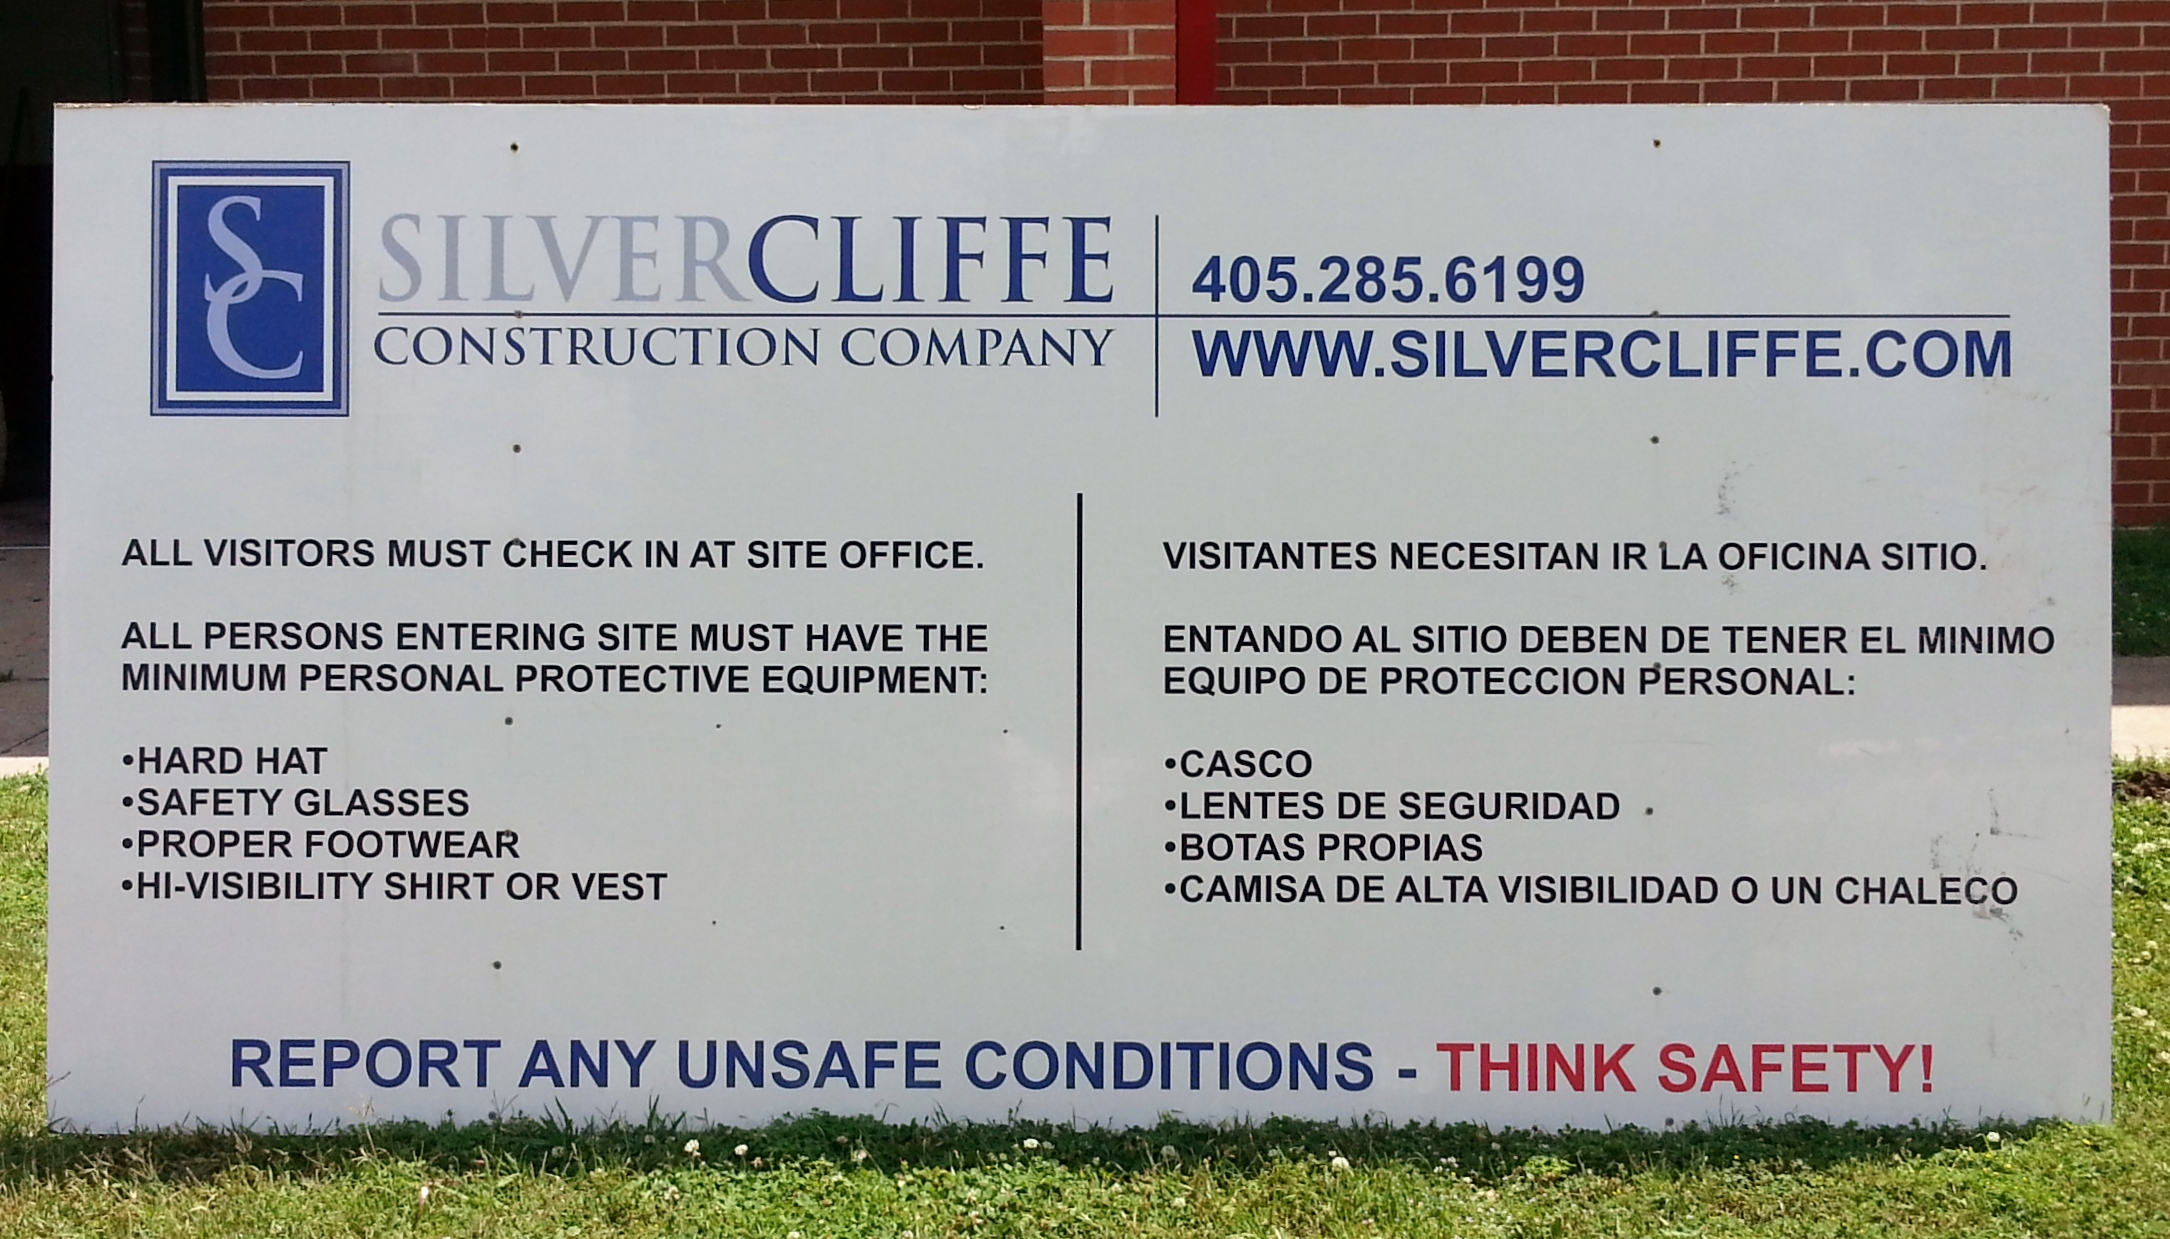 Silver Cliffe Construction Company